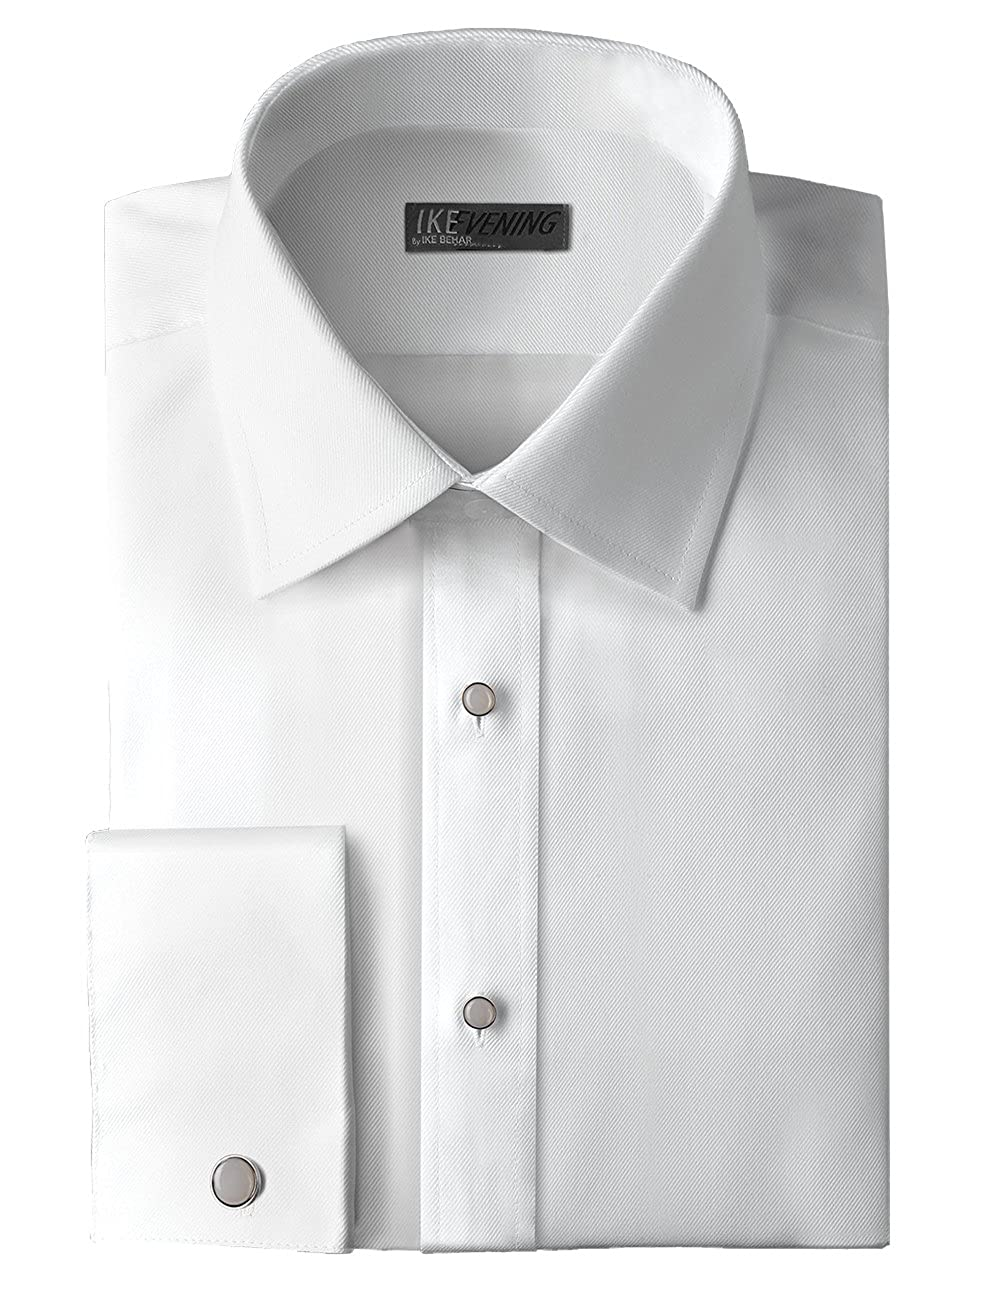 IKE Behar Traditional Fit 100% Woven Cotton Tuxedo Dress Shirt